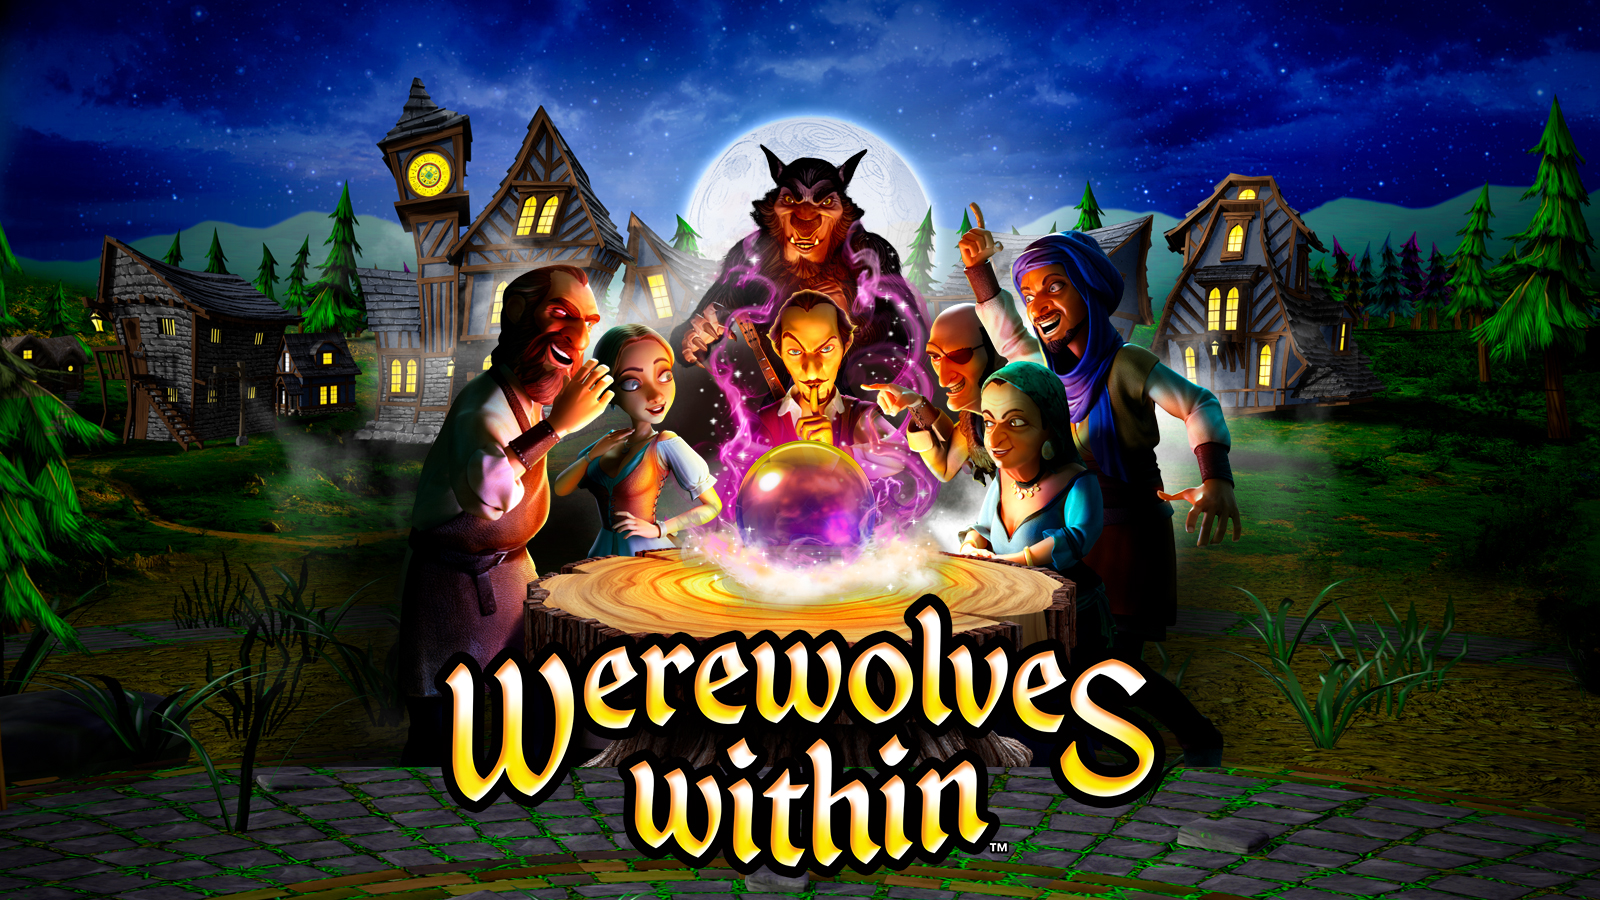 Werewolves Within movie sets its director